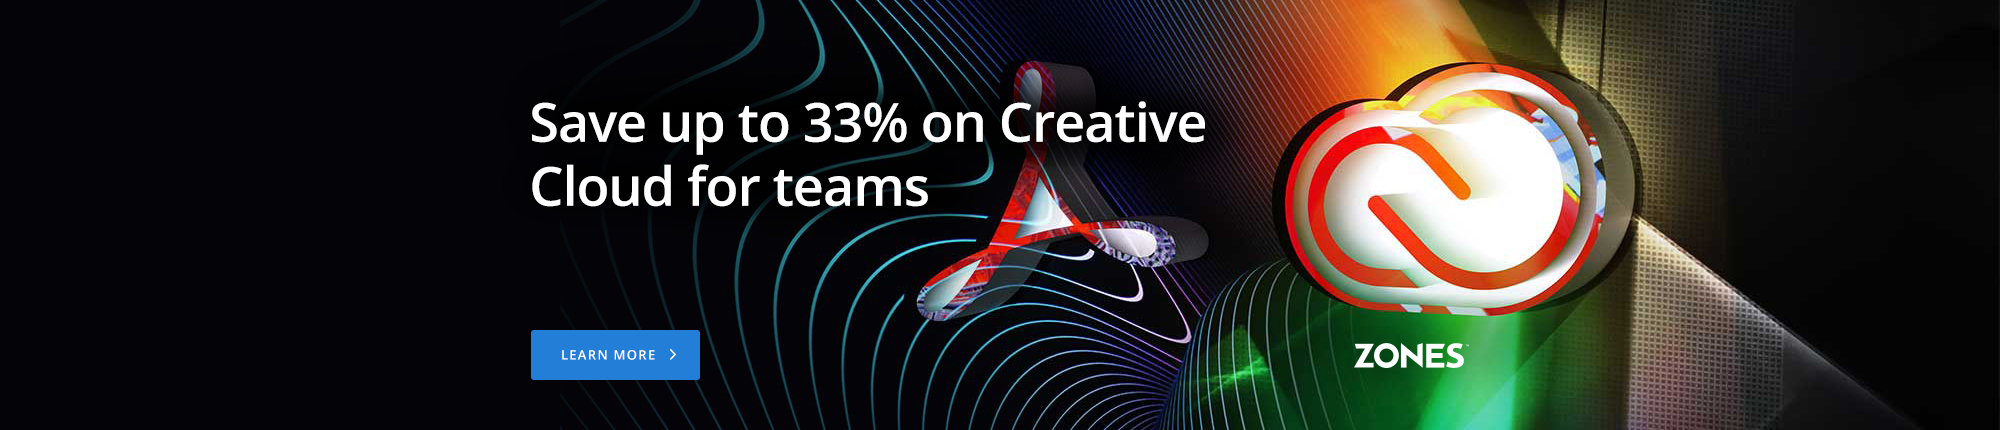 Adobe: Save up to 33% on Creative Cloud for teams